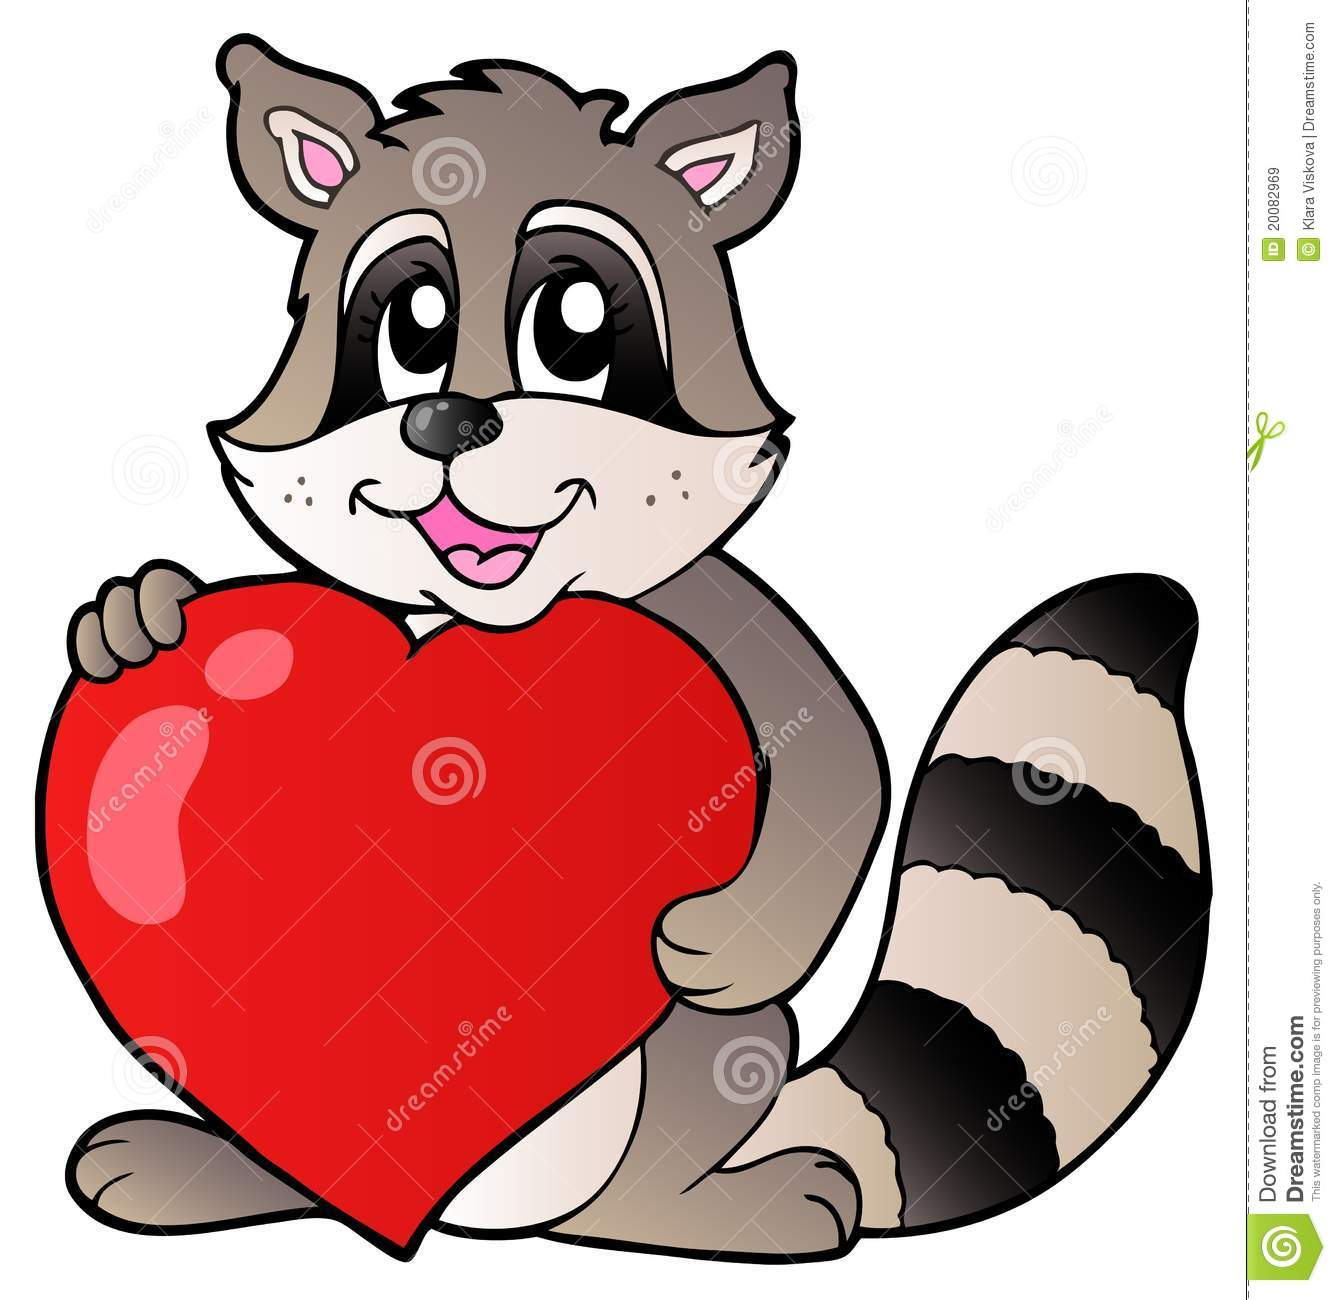 Cute Racoon Holding Heart Royalty Free Stock Images ... Raccoon Drawing